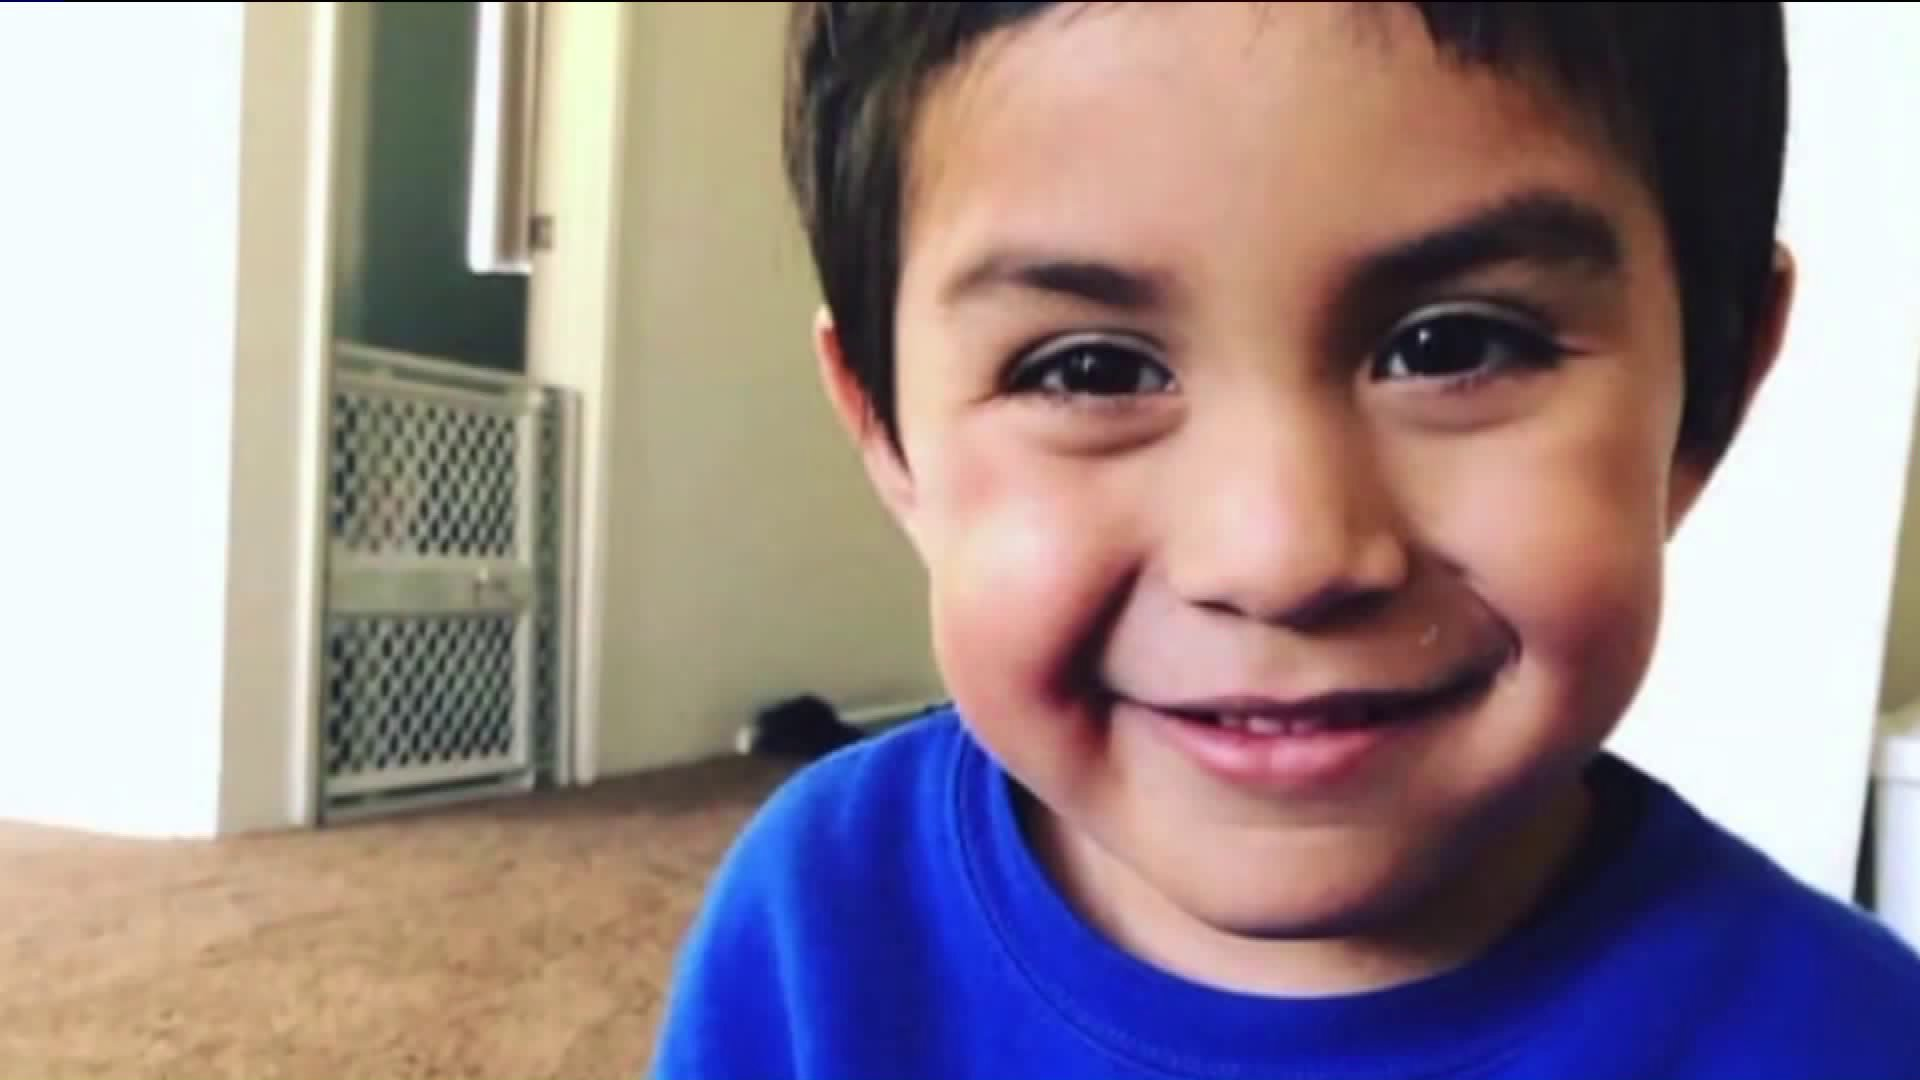 Funeral Set for 4-Year-Old Boy at Center of Abuse Probe